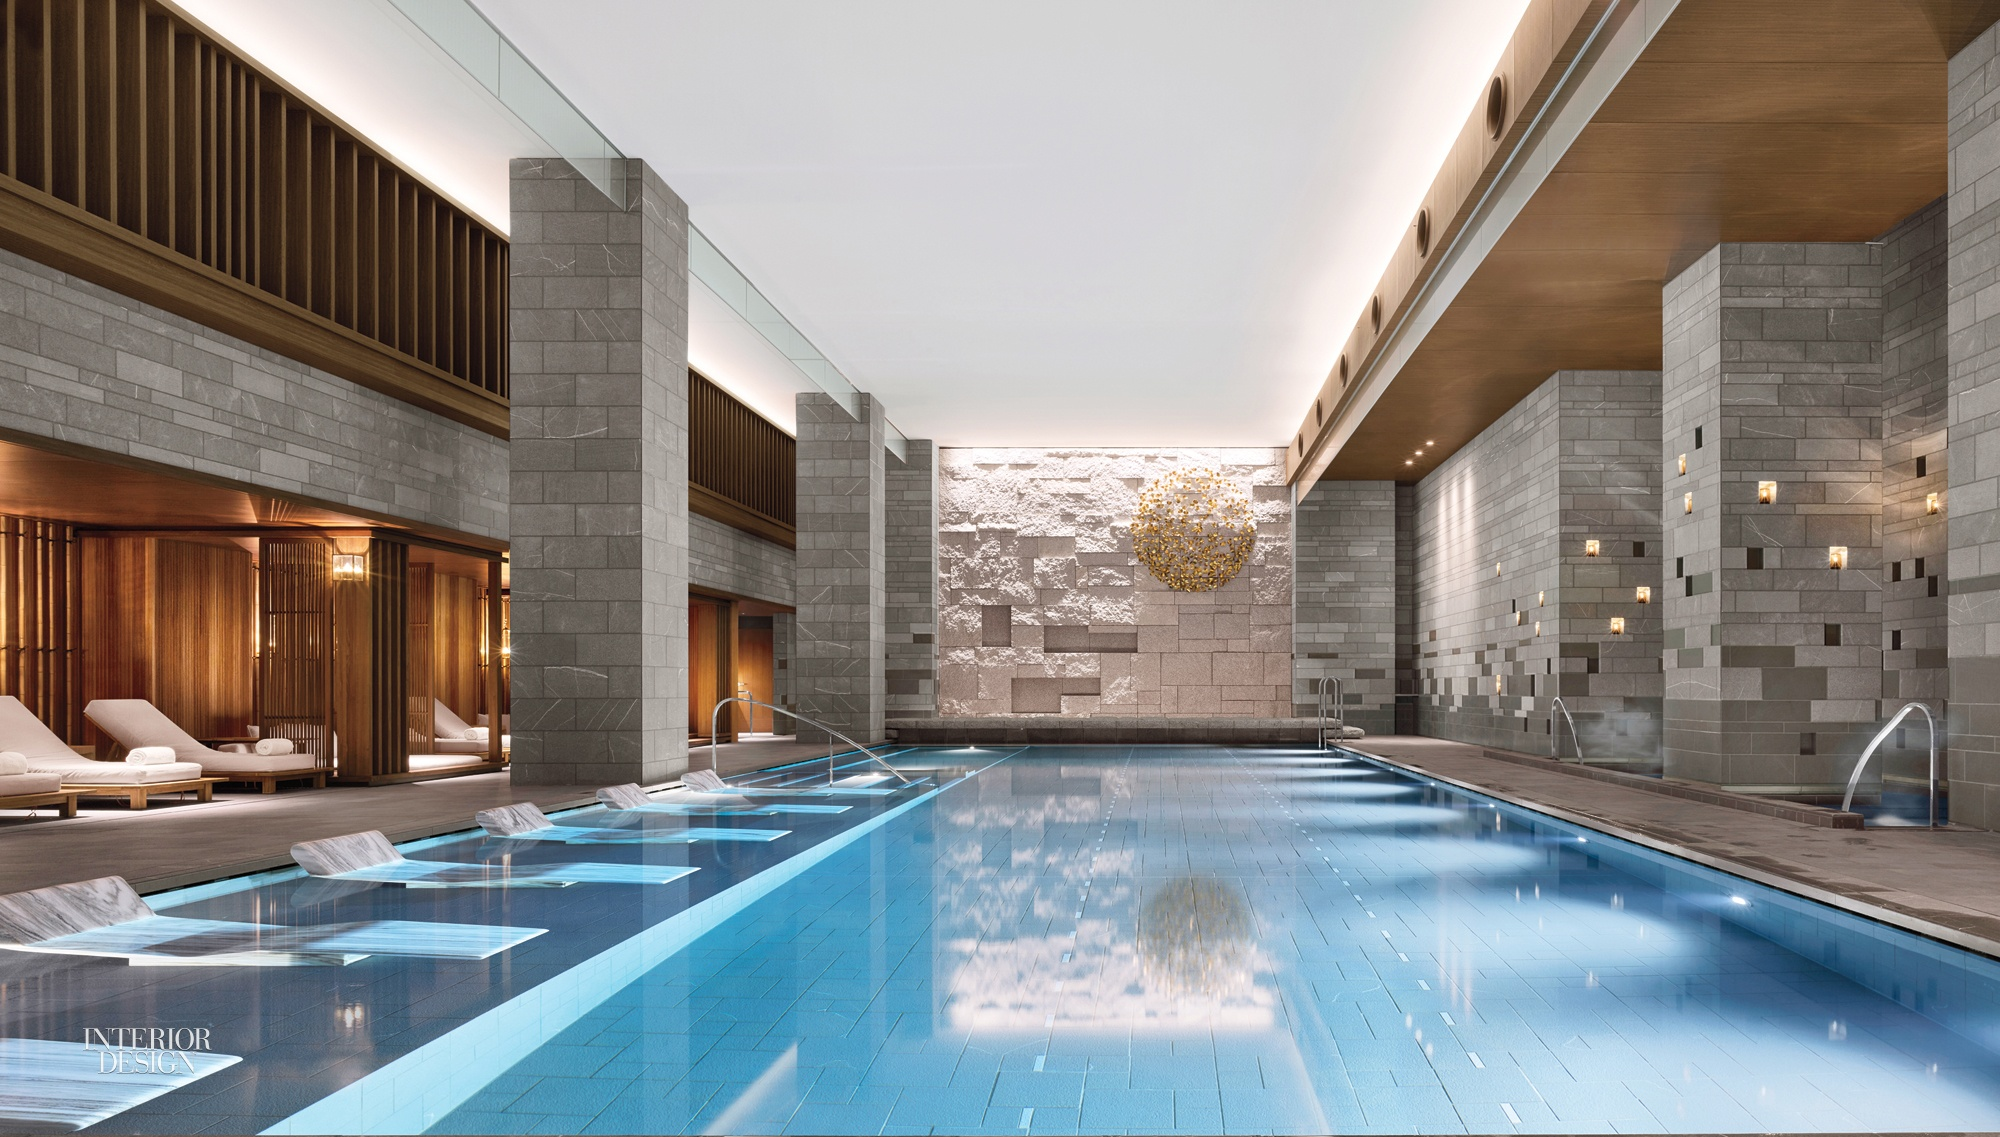 A Swimming Pool Inside The Four Seasons Hotel Kyoto By Hirsch Bedner  Associates And Kume Sekkei Co. Photography By Will Pryce.